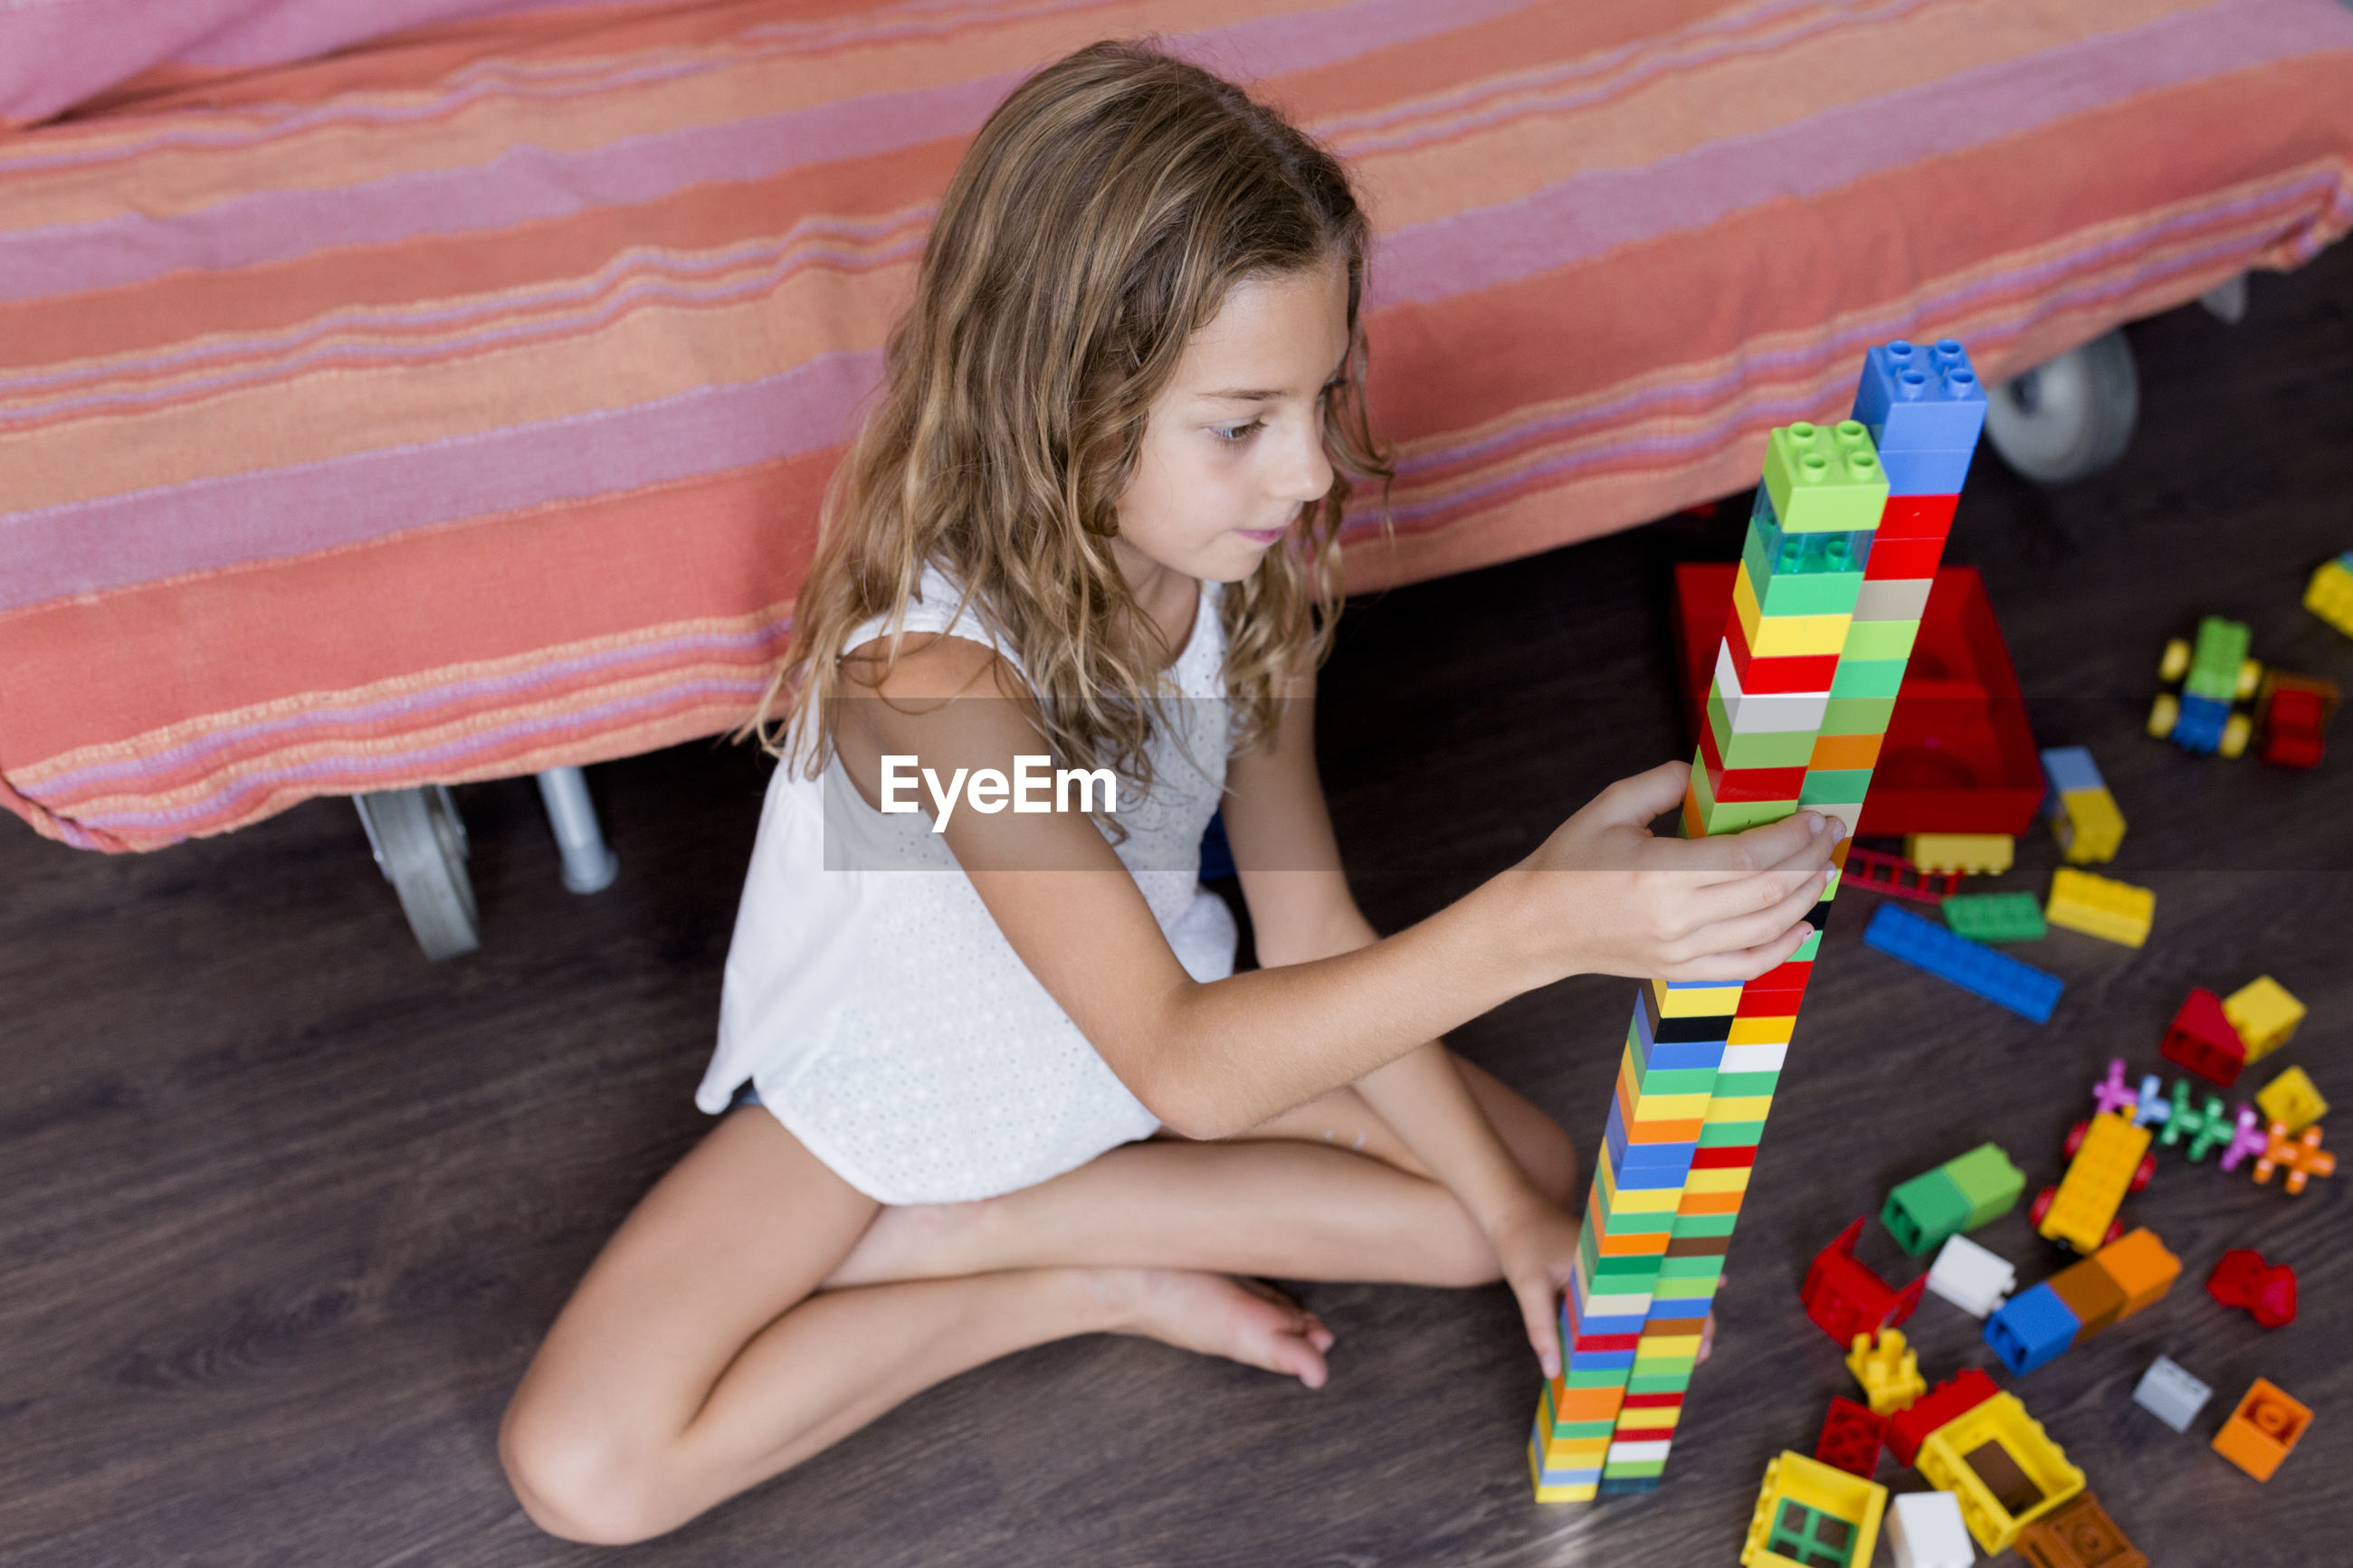 High angle view of girl playing with toy blocks